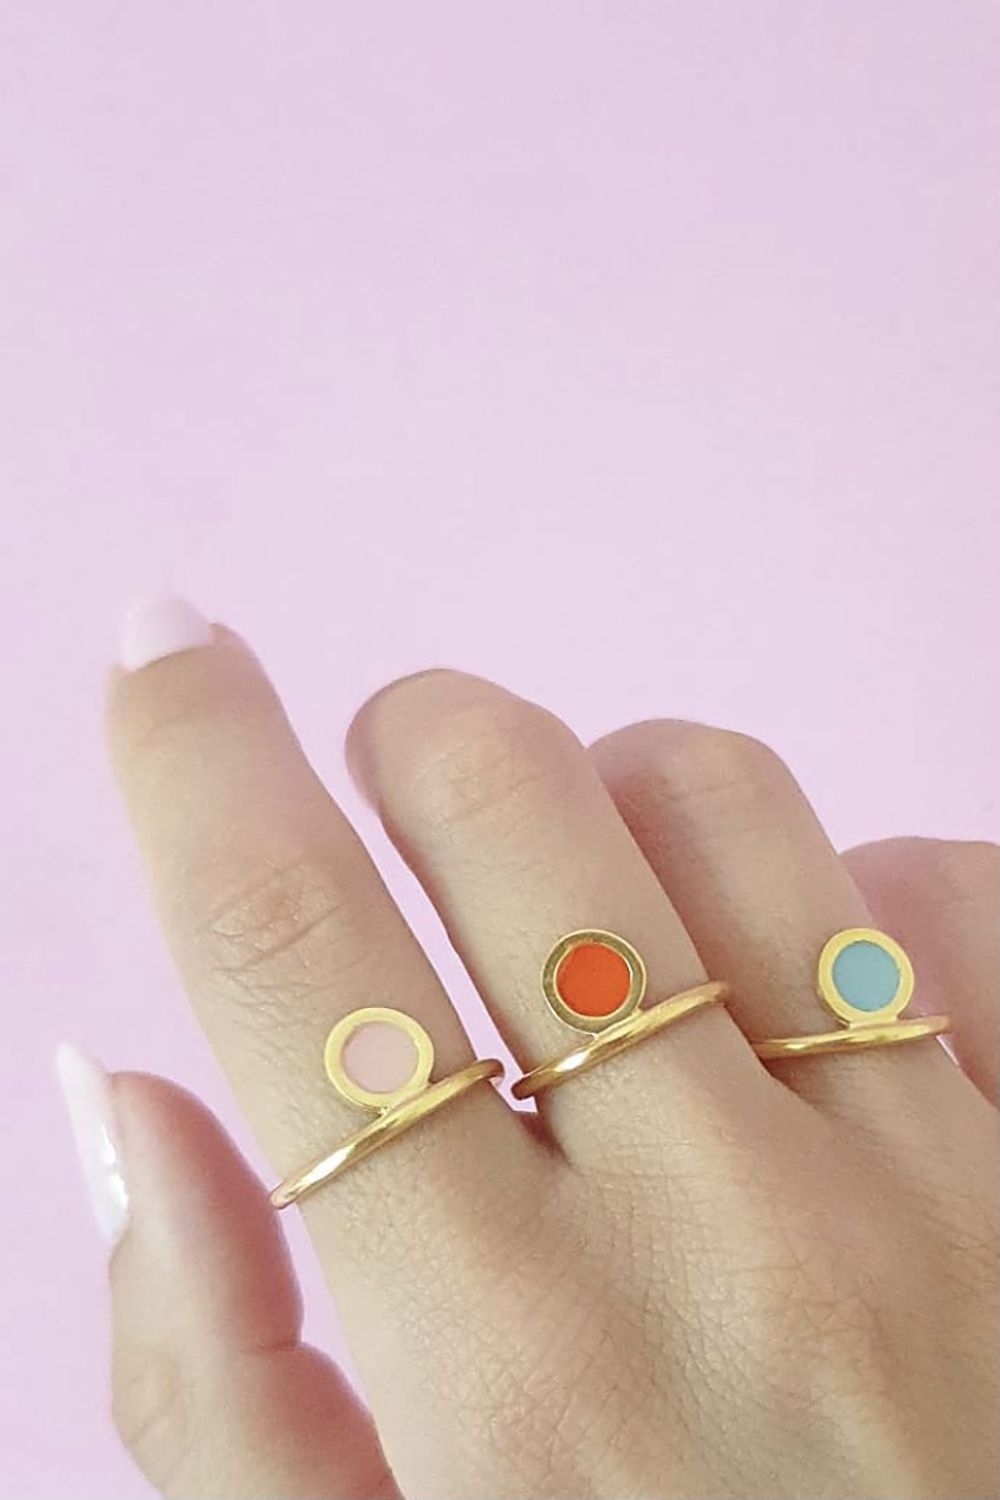 Colour ring in pink